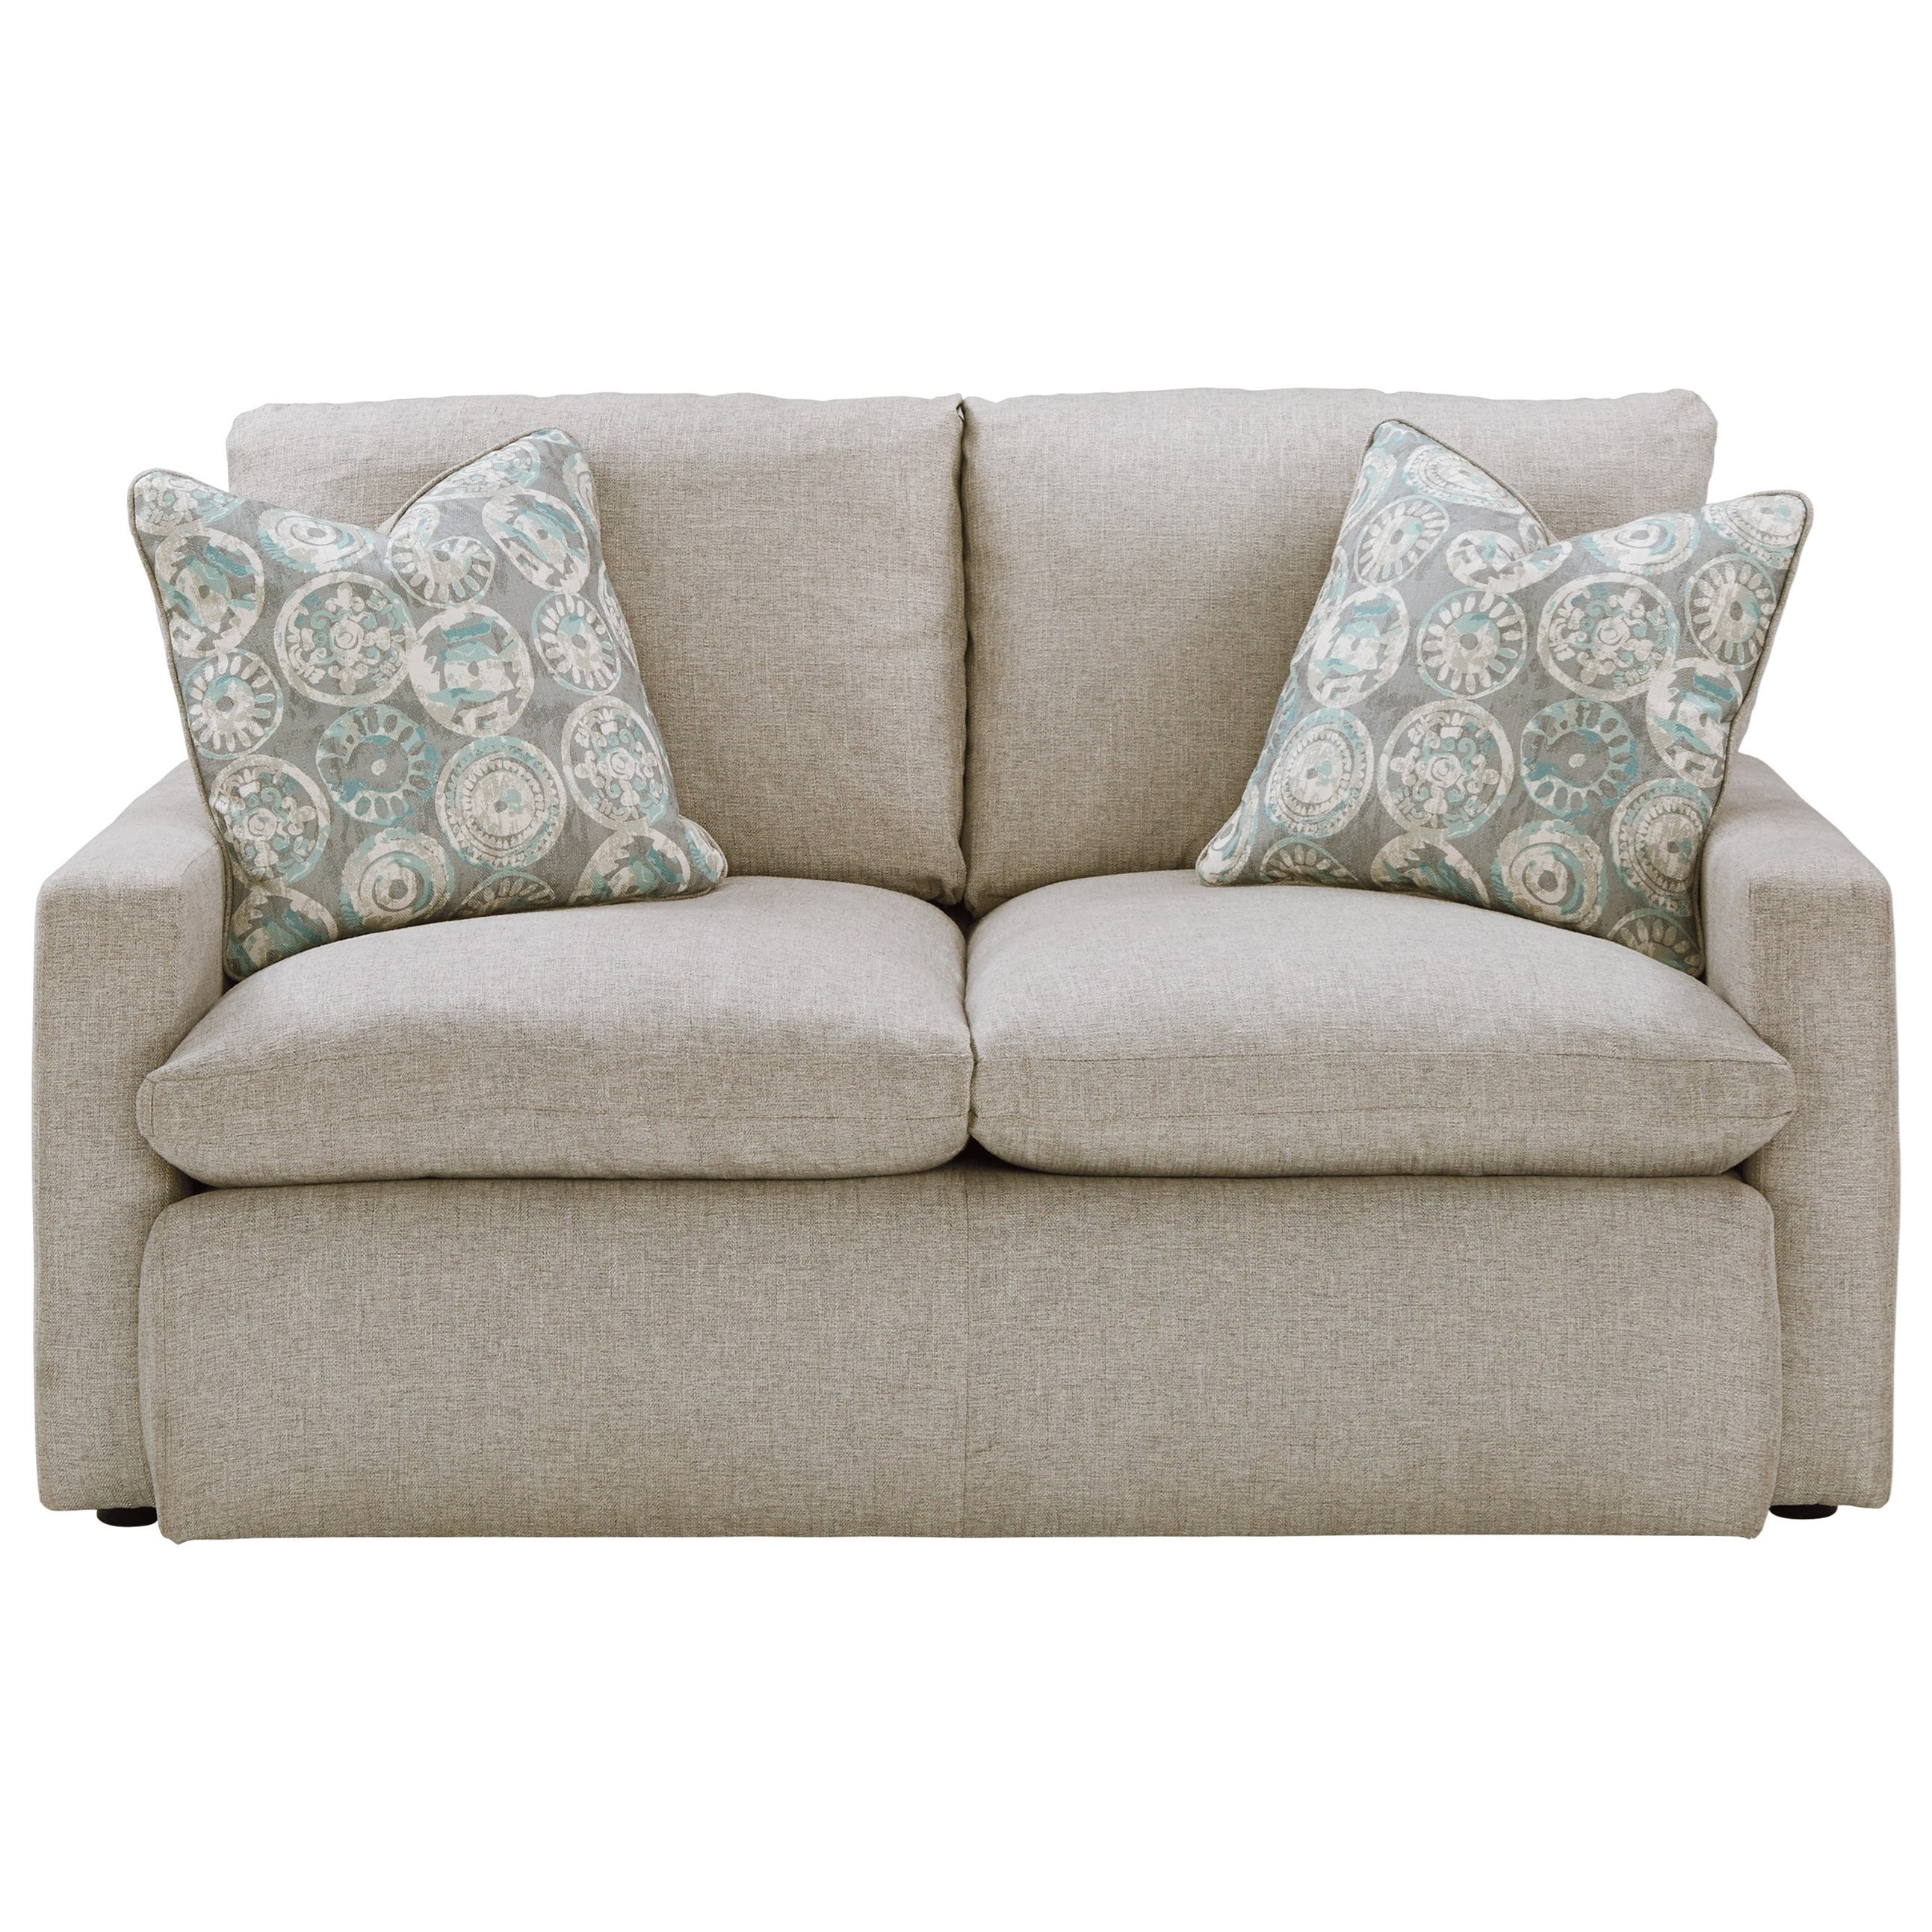 Benchcraft Melilla Loveseat With Feather Blend Cushions | Miskelly Furniture  | Love Seats